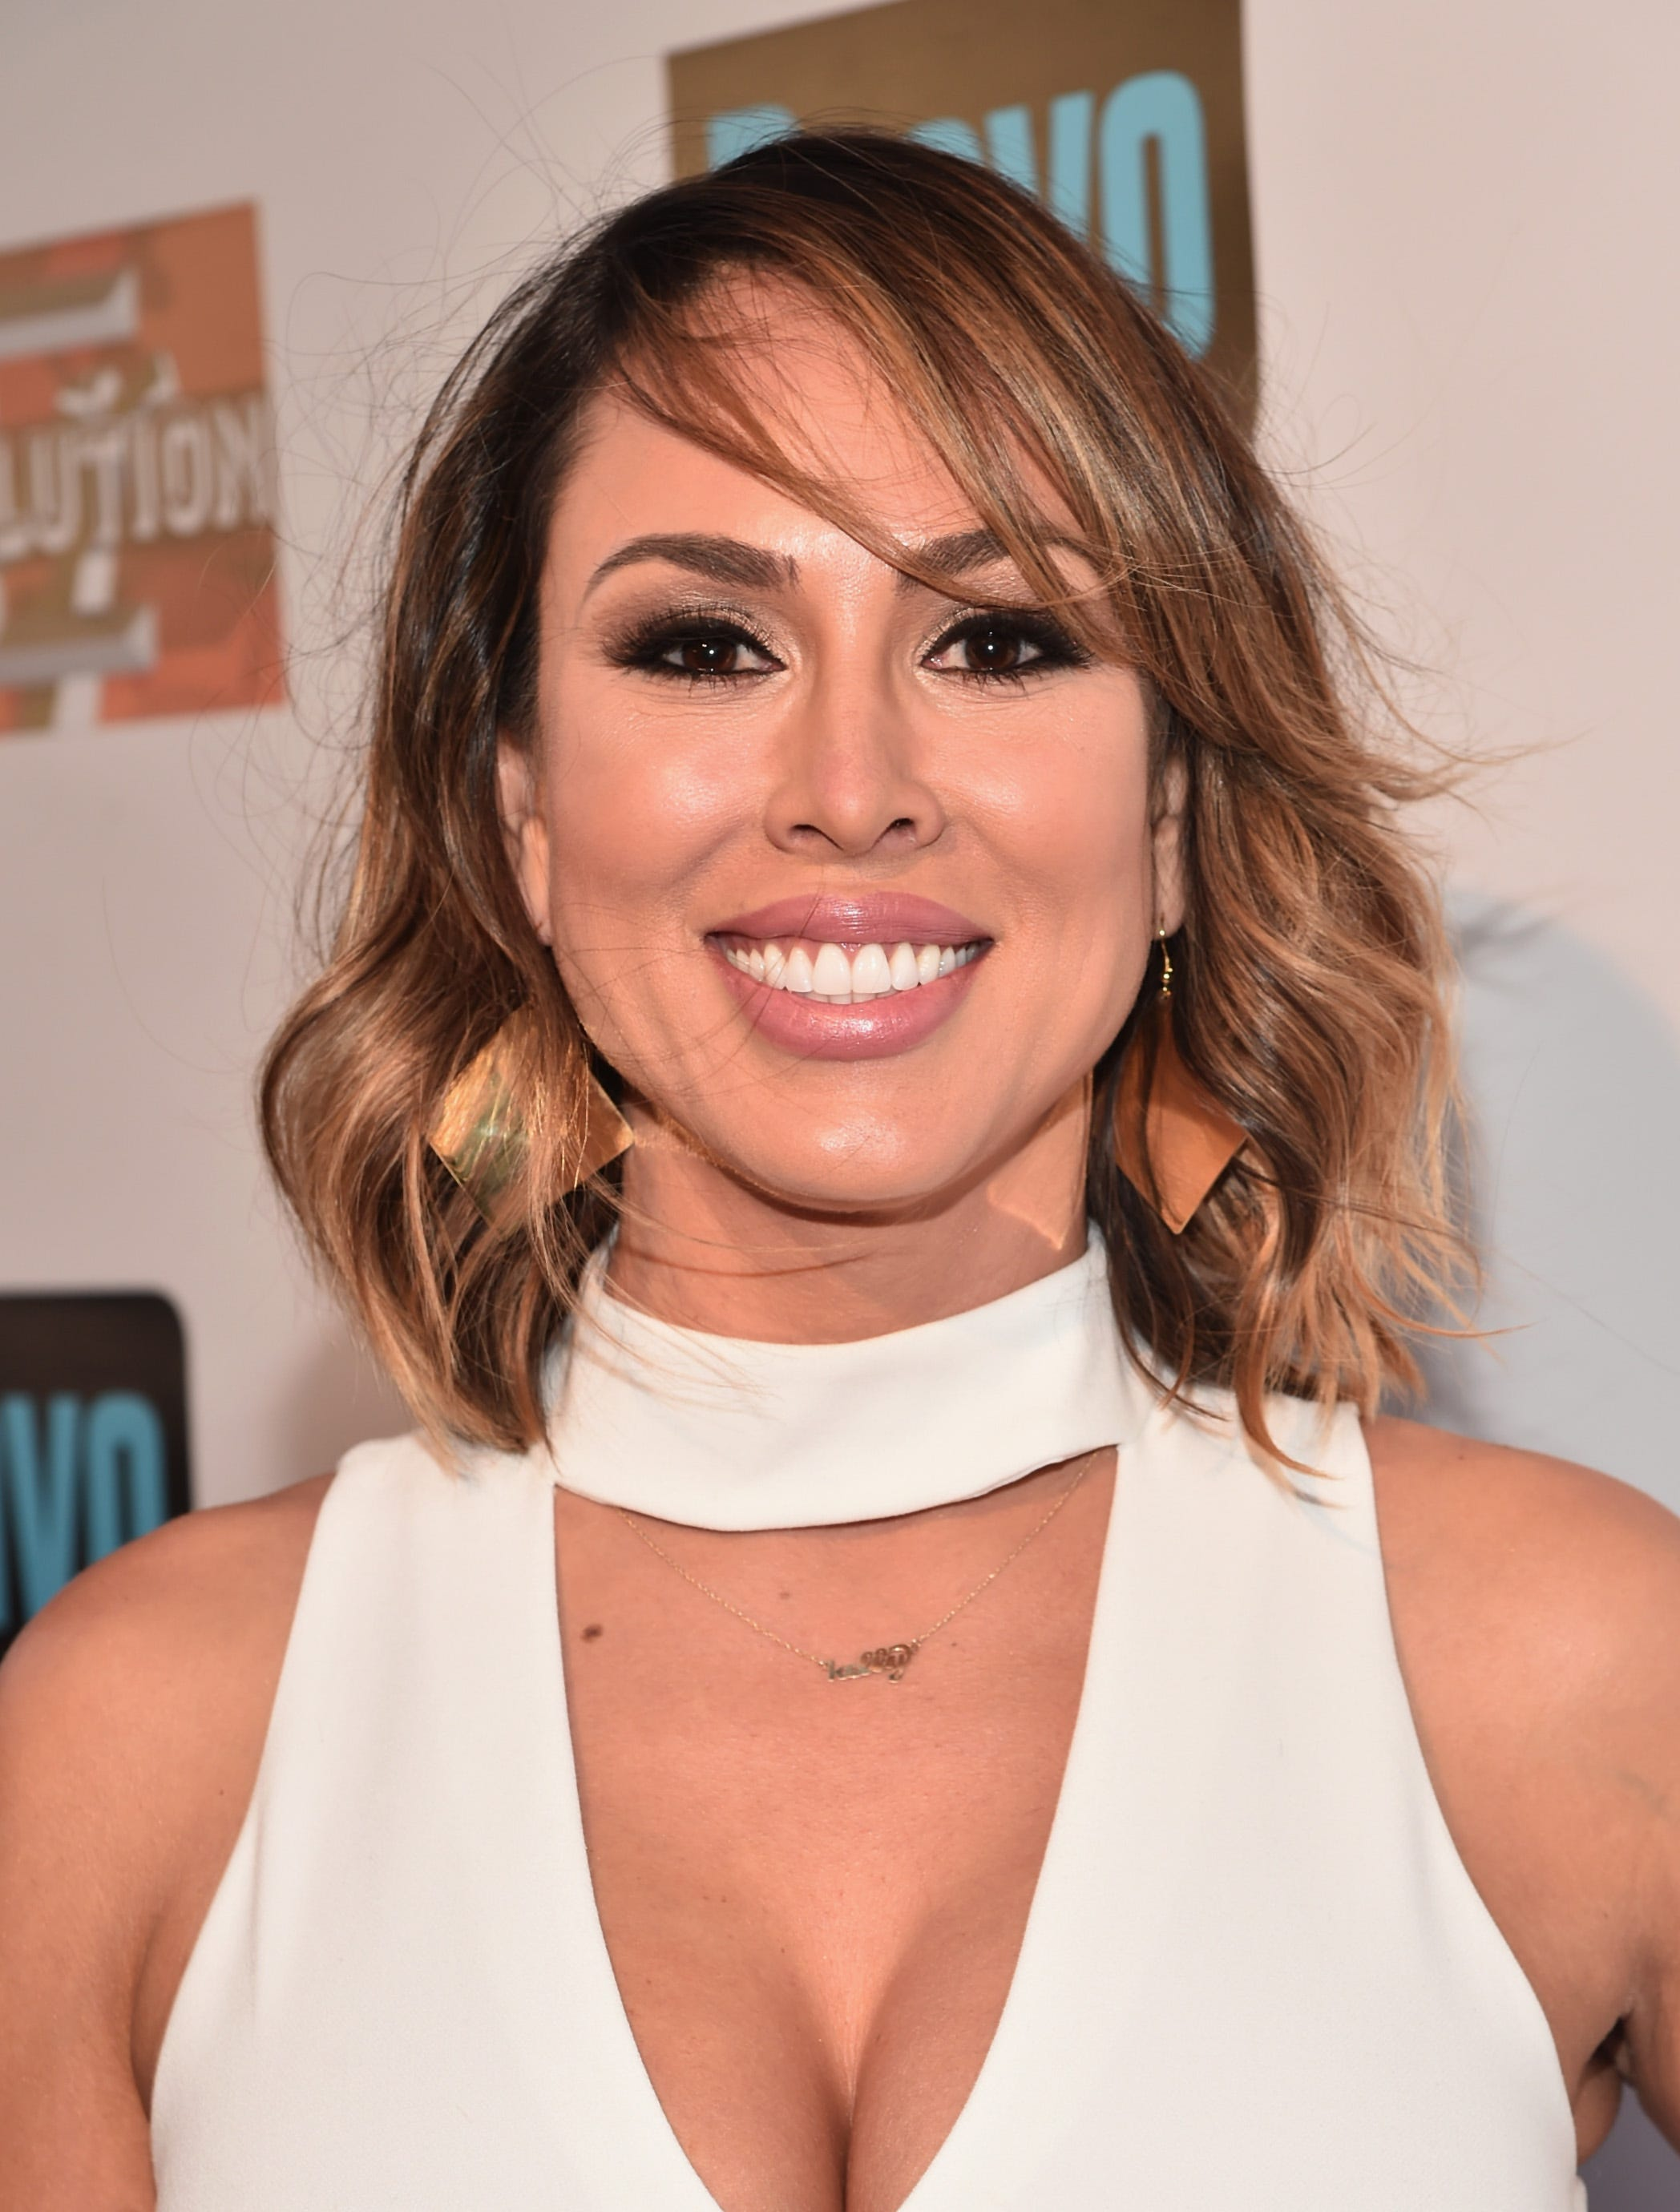 RHOC s Kelly Dodd doubles down on COVID-19 criticism on Instagram, loses partnership with Positive Beverage